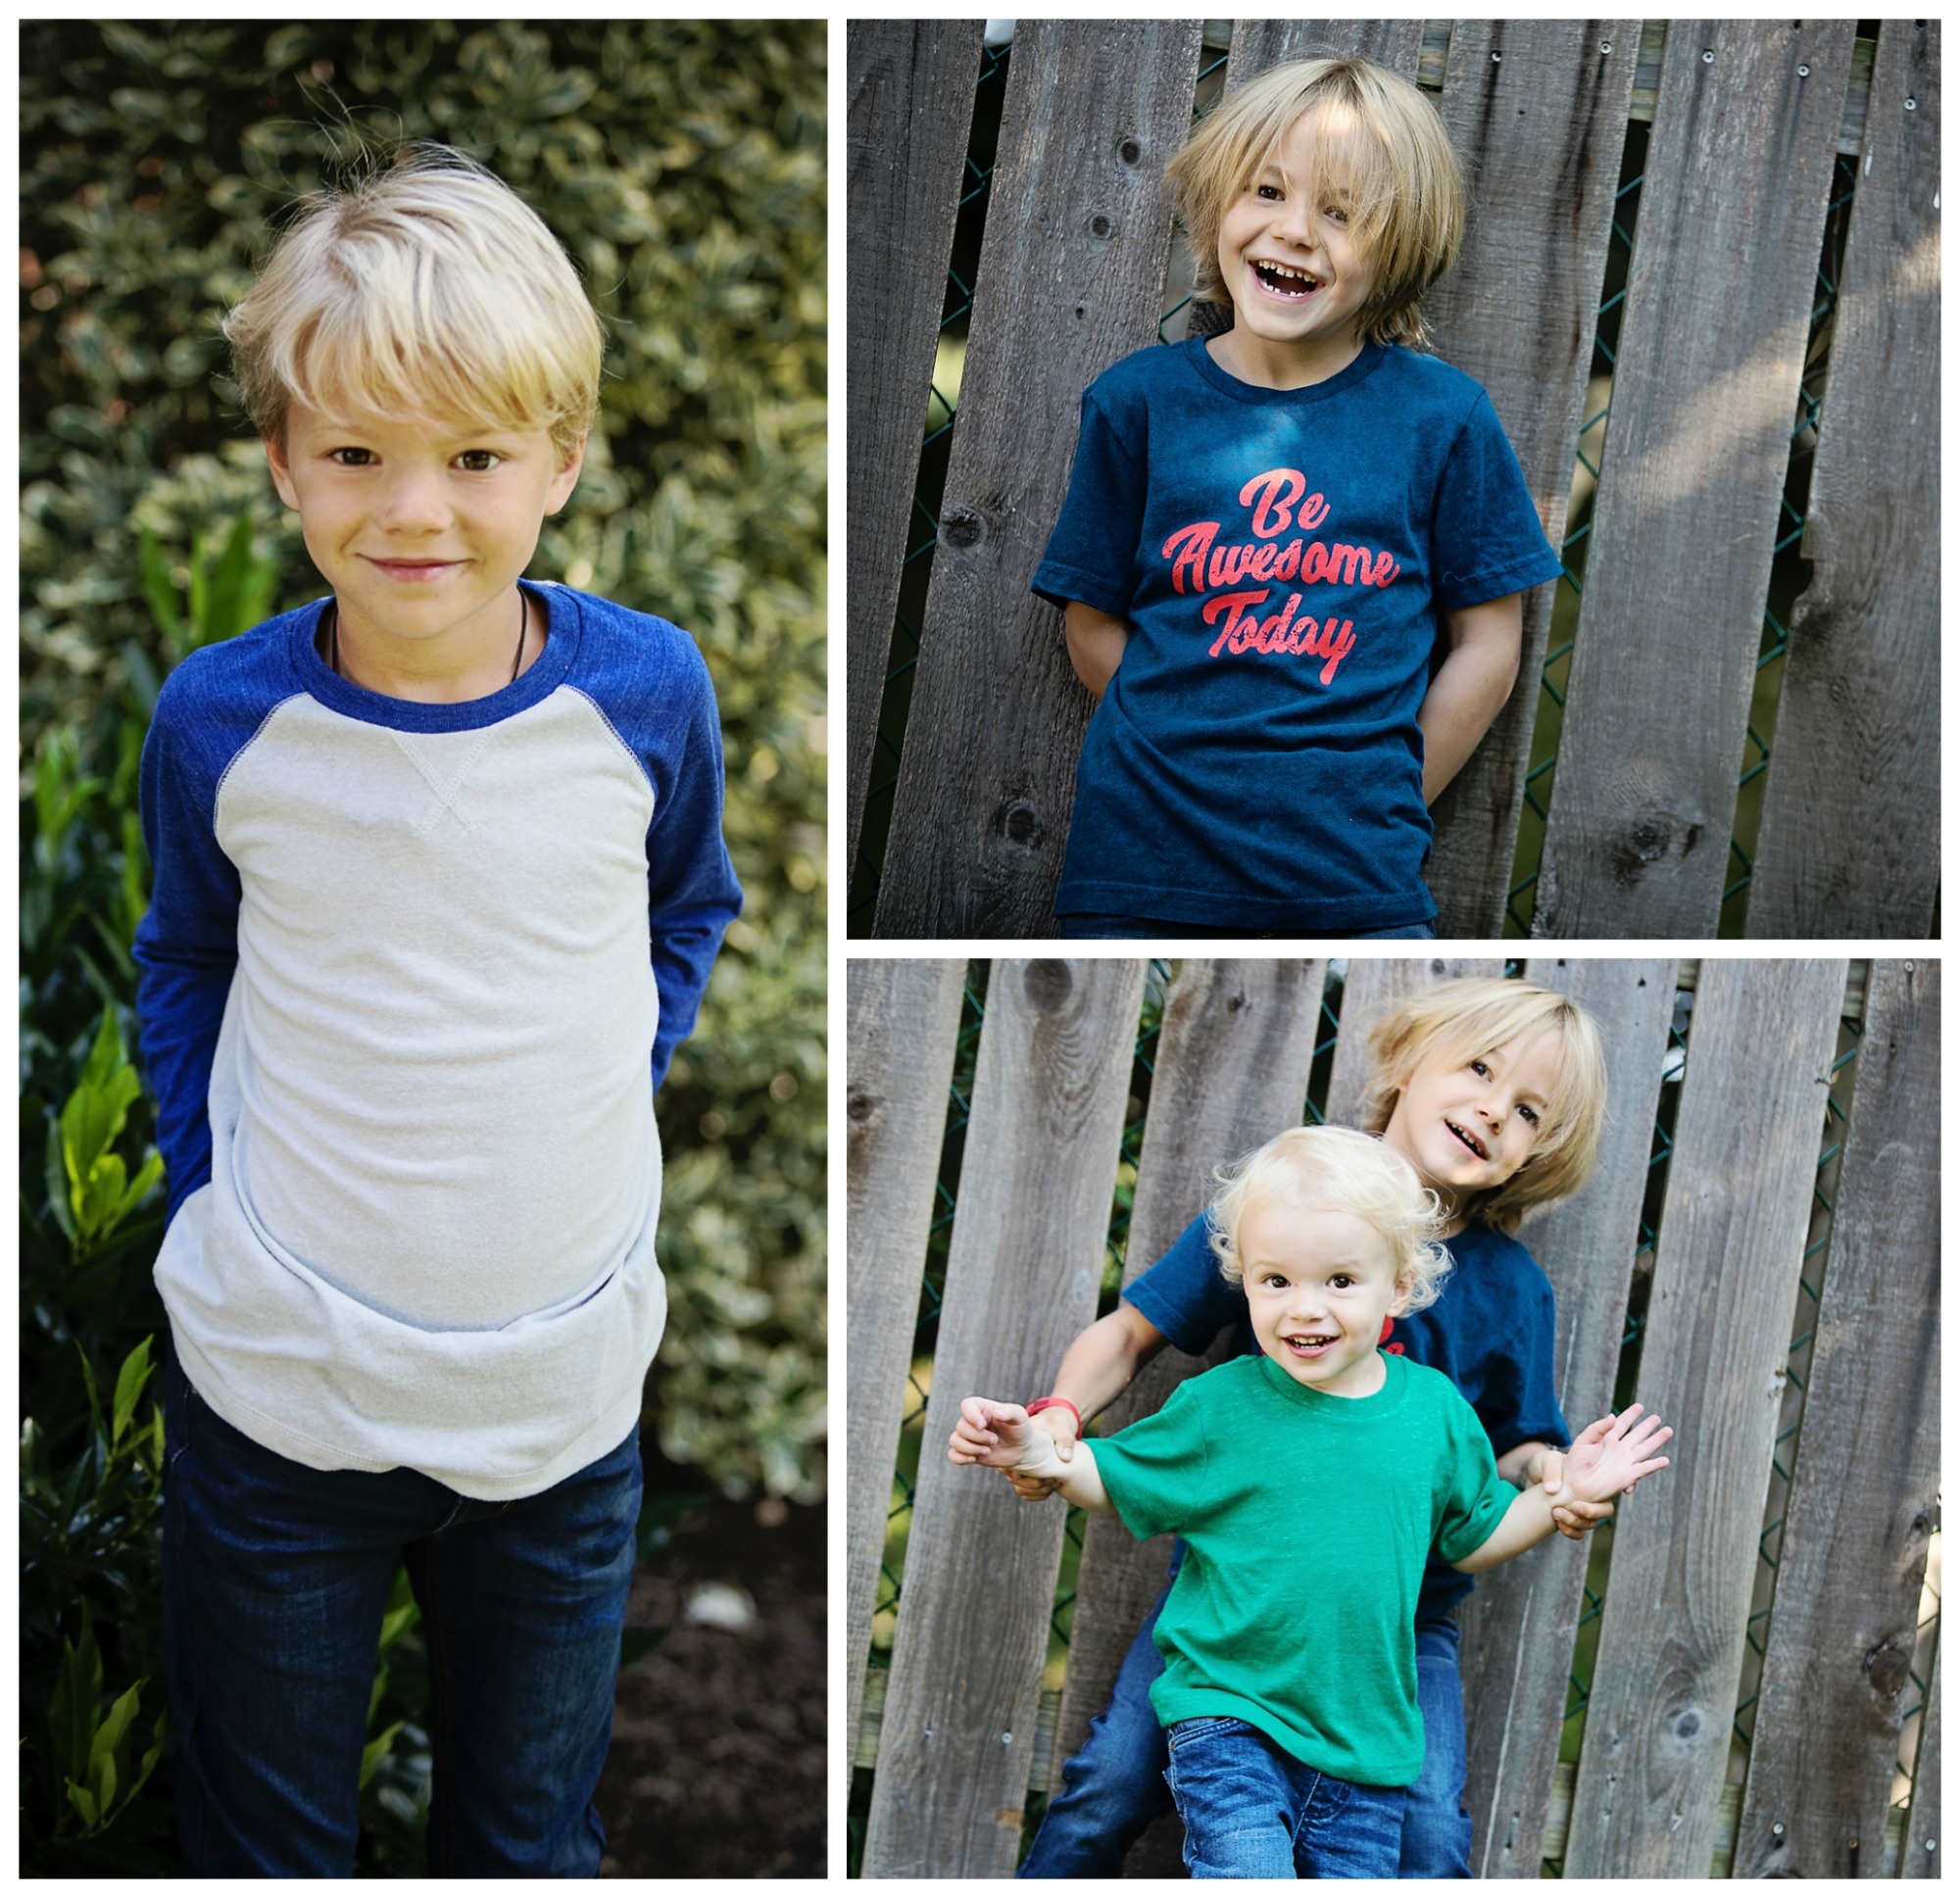 The motherchic kids wearing nordstrom